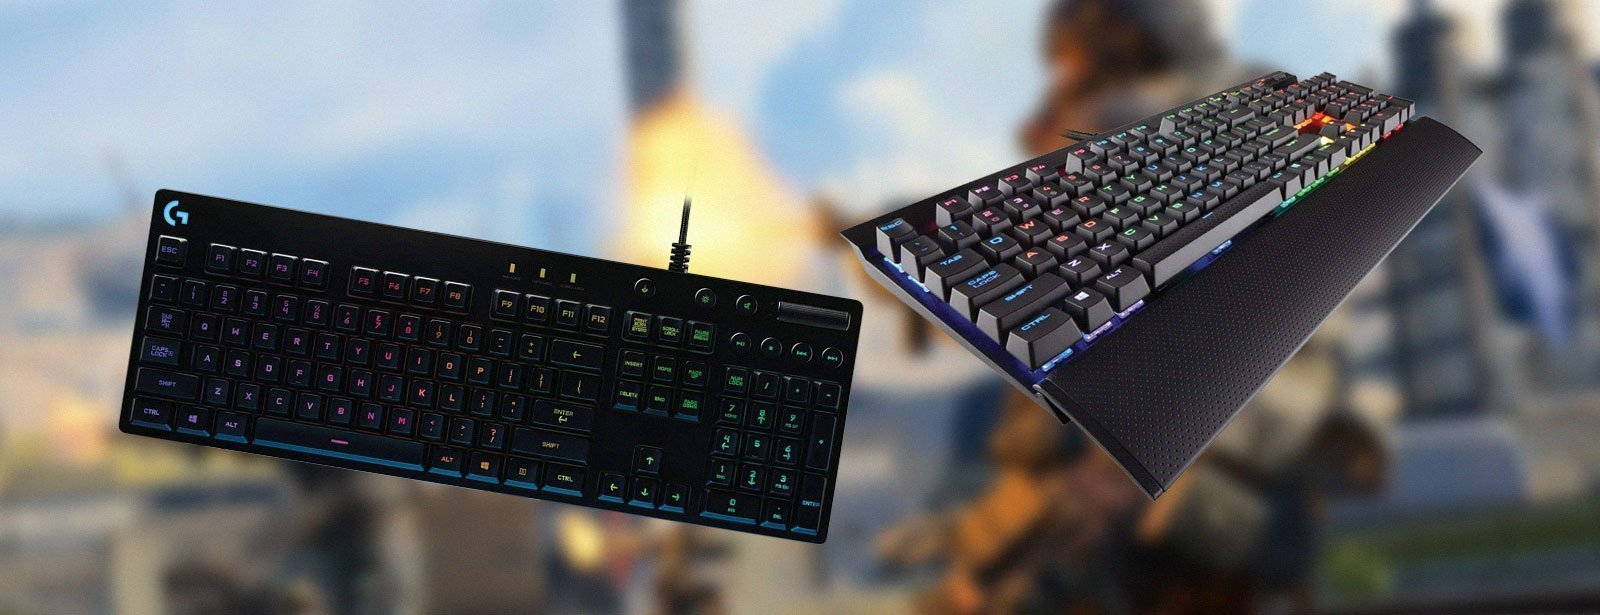 Best Keyboard For Call Of Duty Black Ops 4 Blackout Reviewed Mousepad Gaming Razer Speed 300x250 Mm November 2018